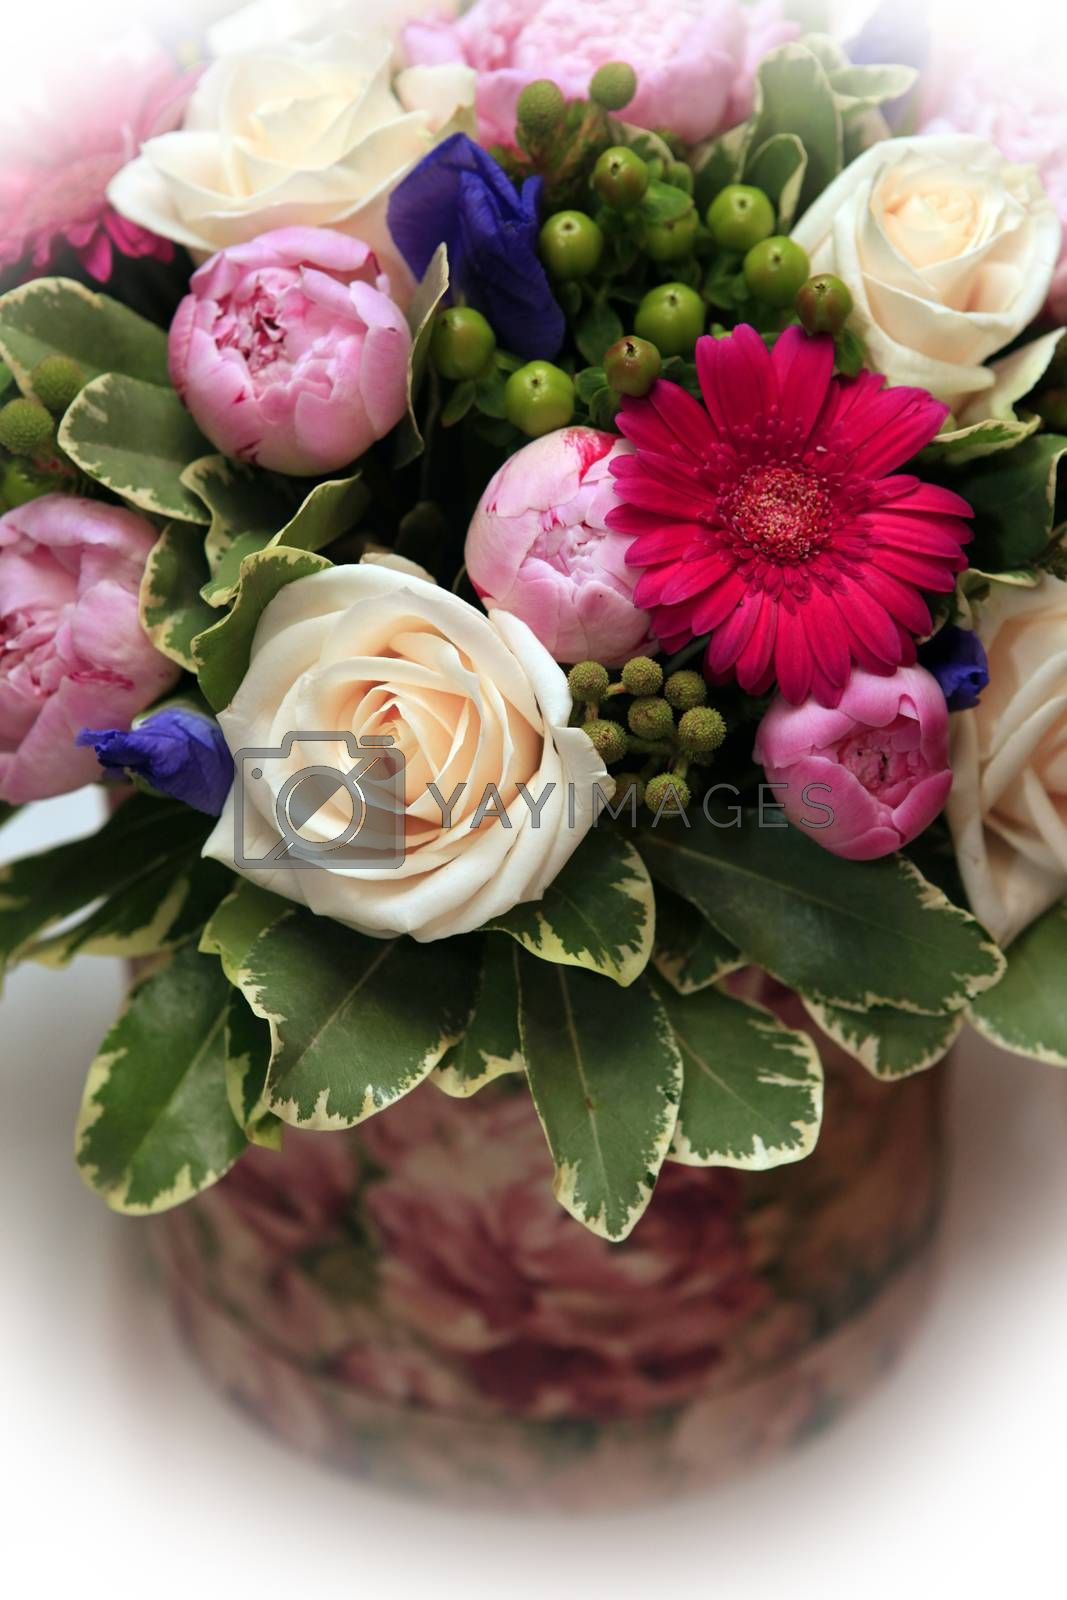 Wedding bouquet from peony and rose on white isolated background